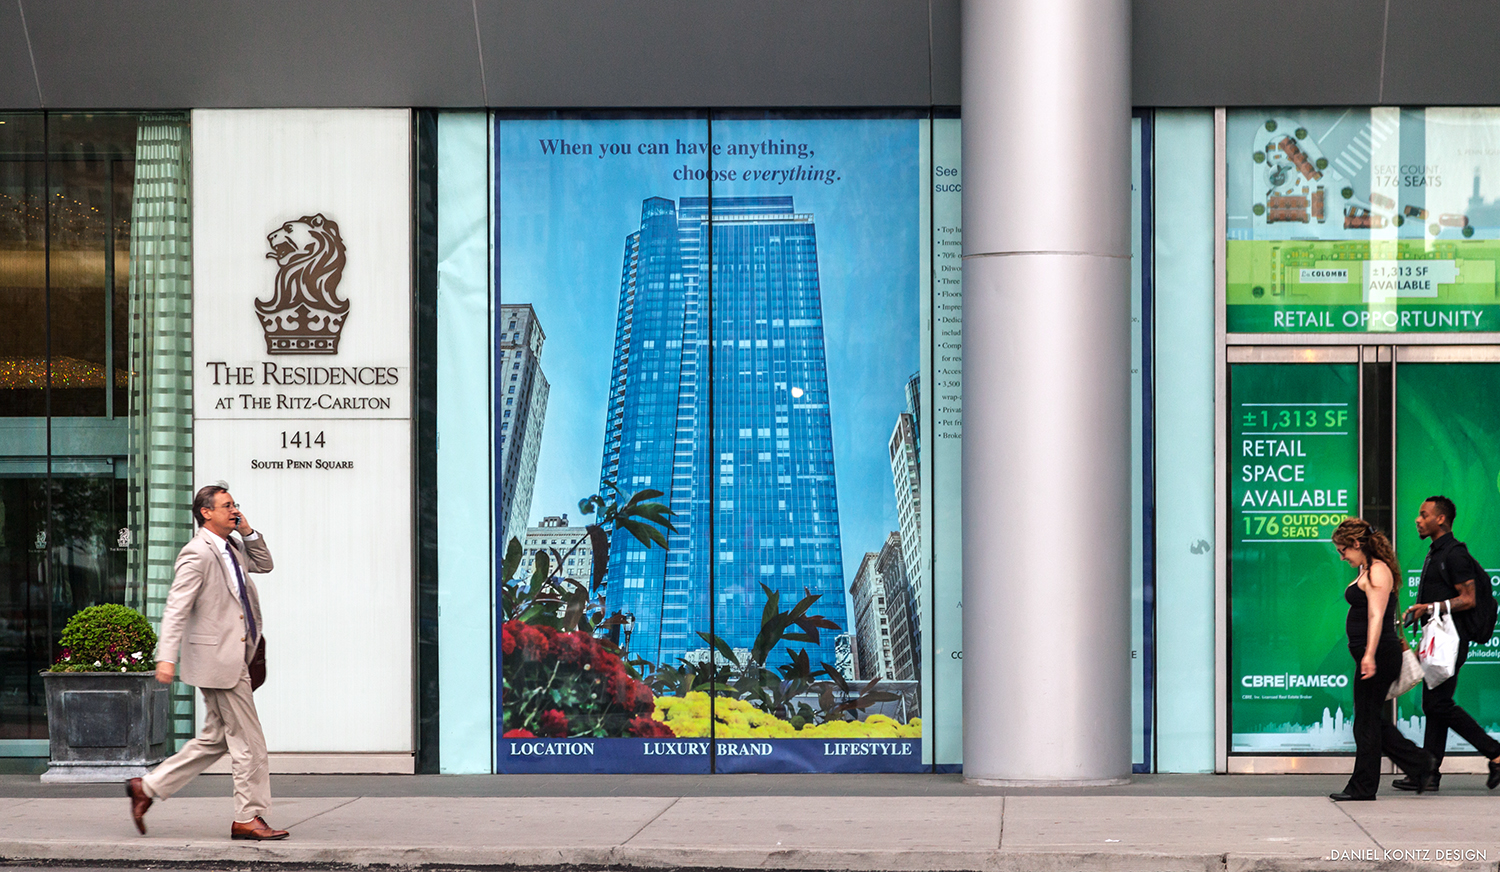 Window-front advertisement on the 1st floor of the Residences at the Ritz-Carlton.